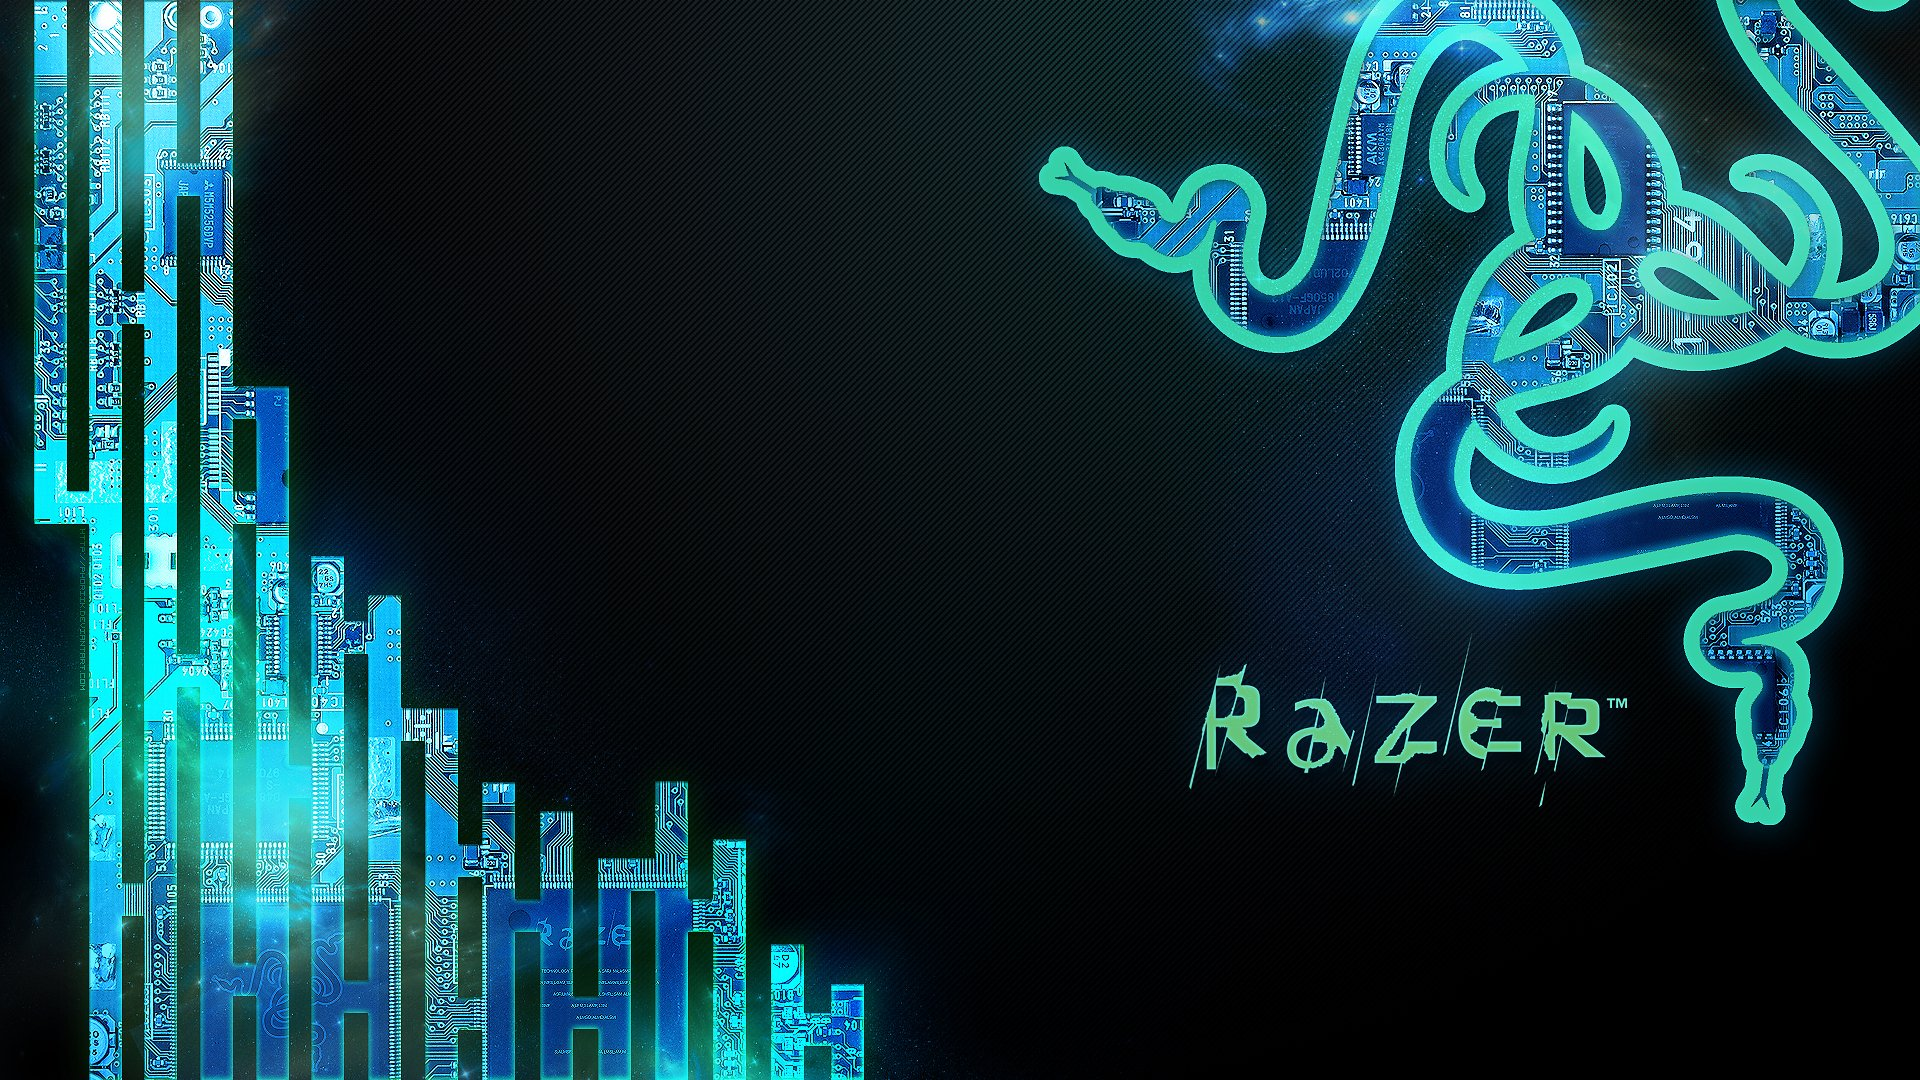 64 razer hd wallpapers background images wallpaper abyss